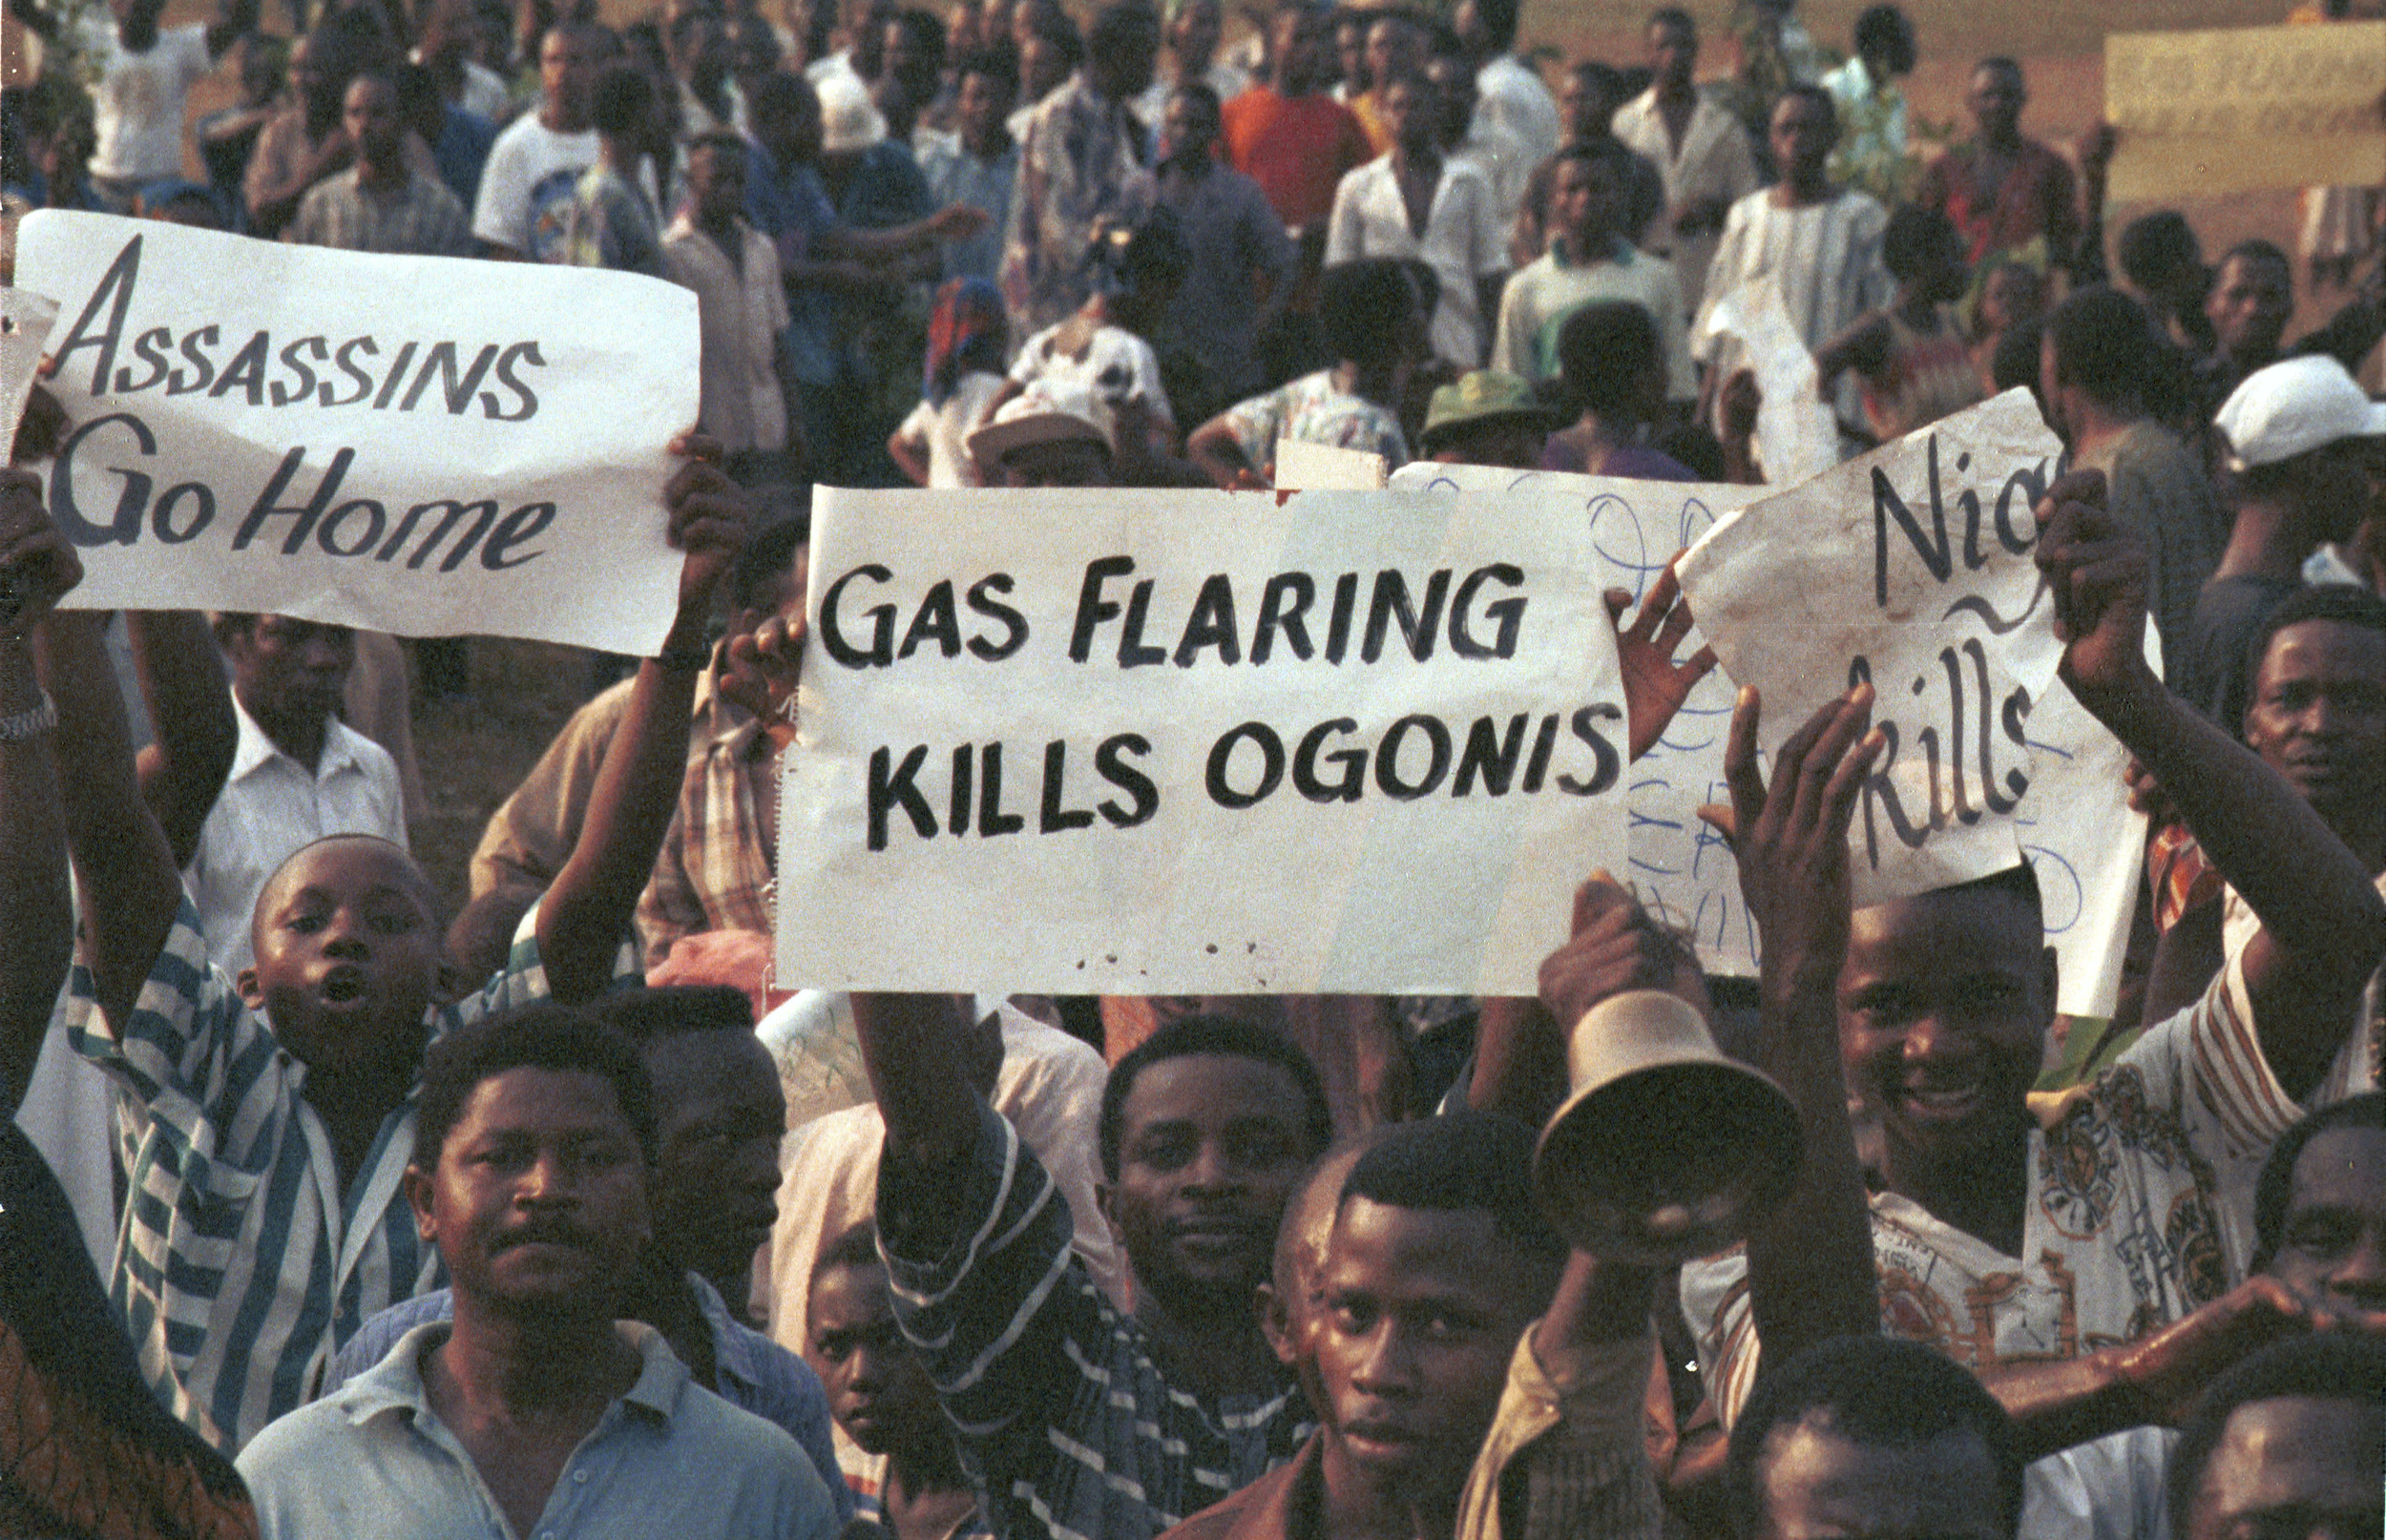 """High angel view of demonstrating crowd at Ogoni Day demo, with banners: """"Gas flaring kills Ogoni"""" and """"Assassins go home"""". Ogoni Day demonstration, Nigeria, 1993"""